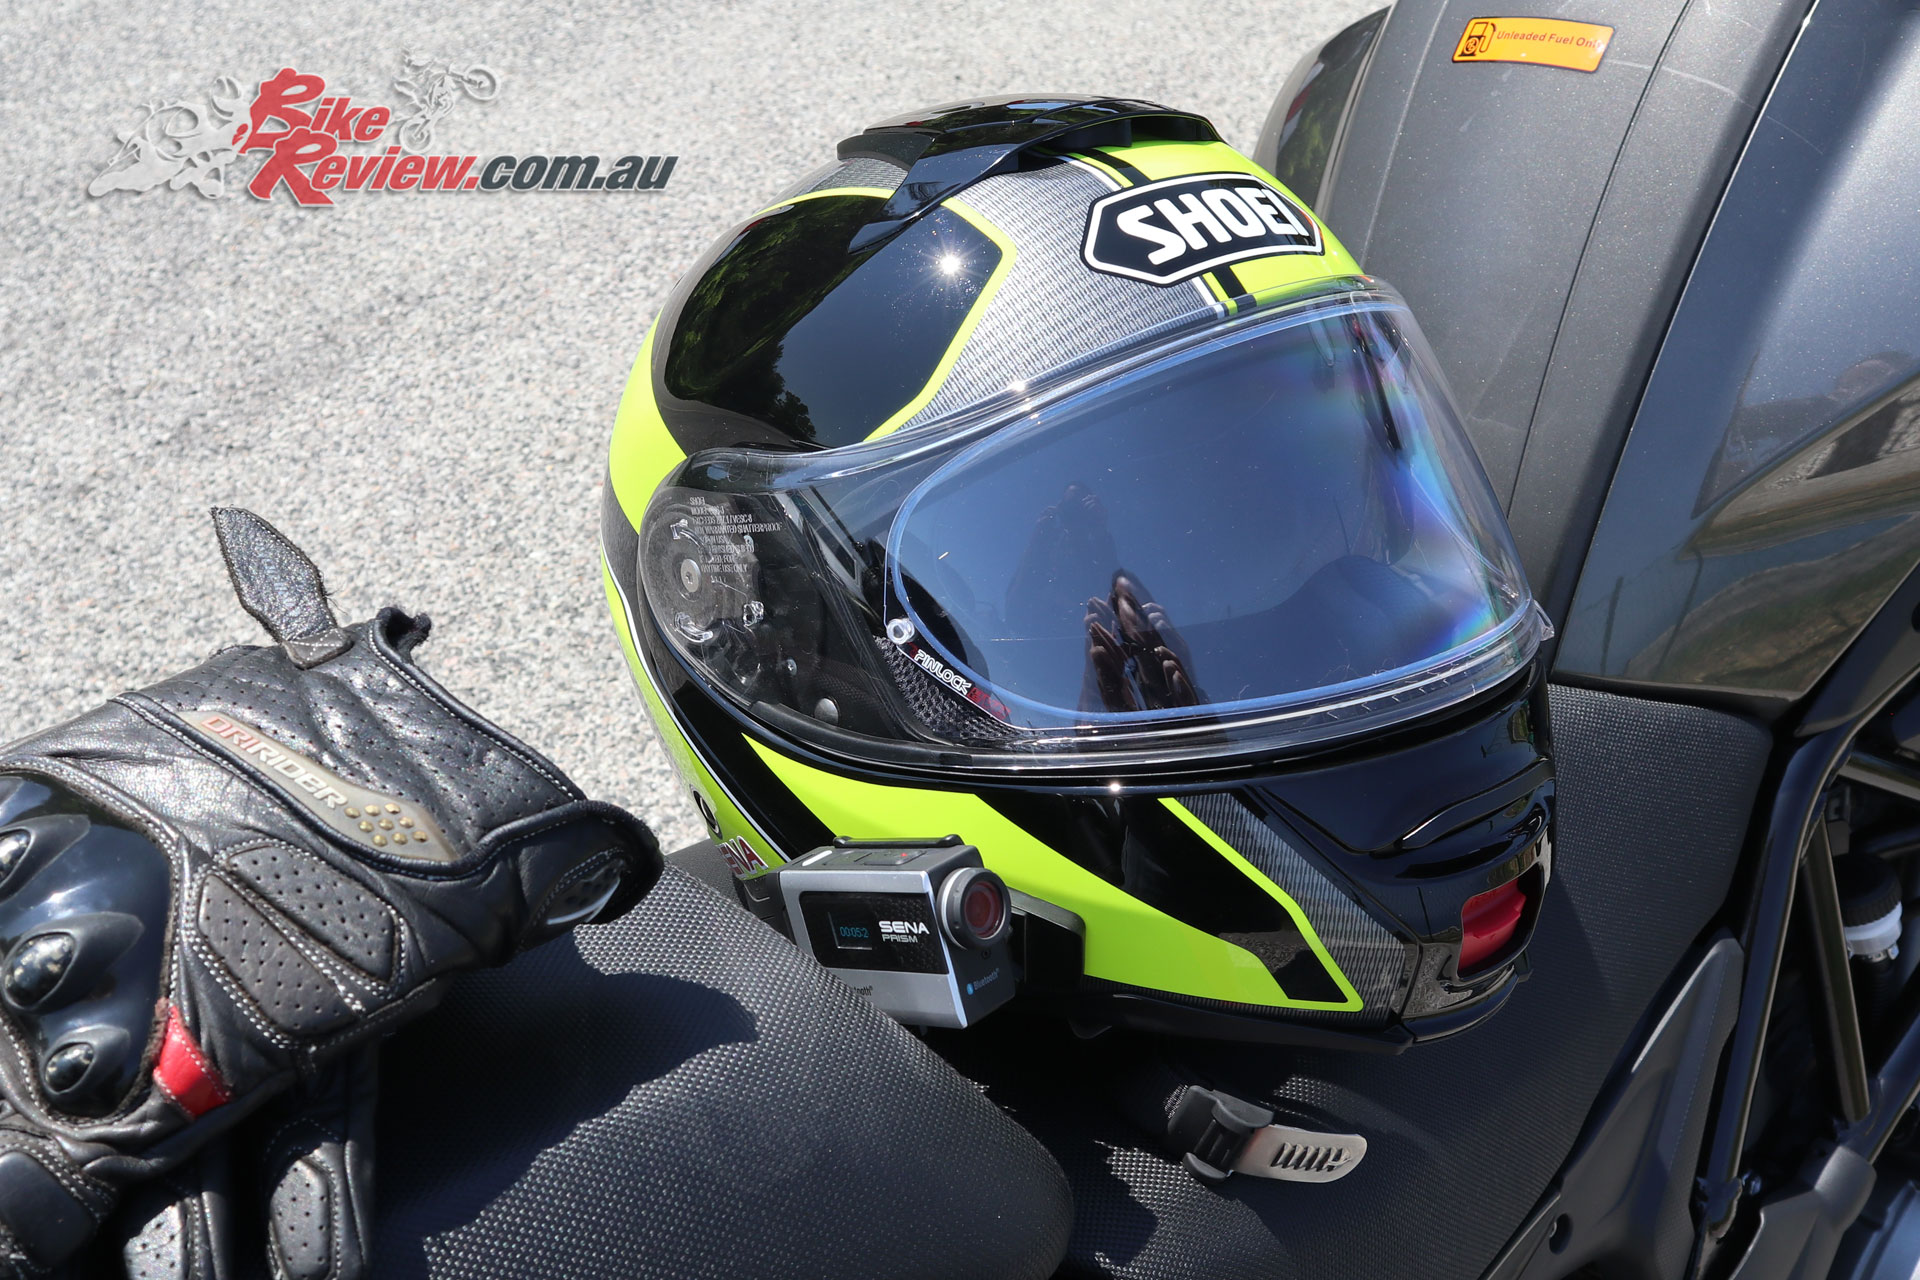 I took my Shoei Neotec II over to Italy for the Benelli TRK 502X launch and used it along with the Sena Prism, with the Sena SRL allowing for easy control of the camera, as I didn't need music or radio, or the comms system at the time.